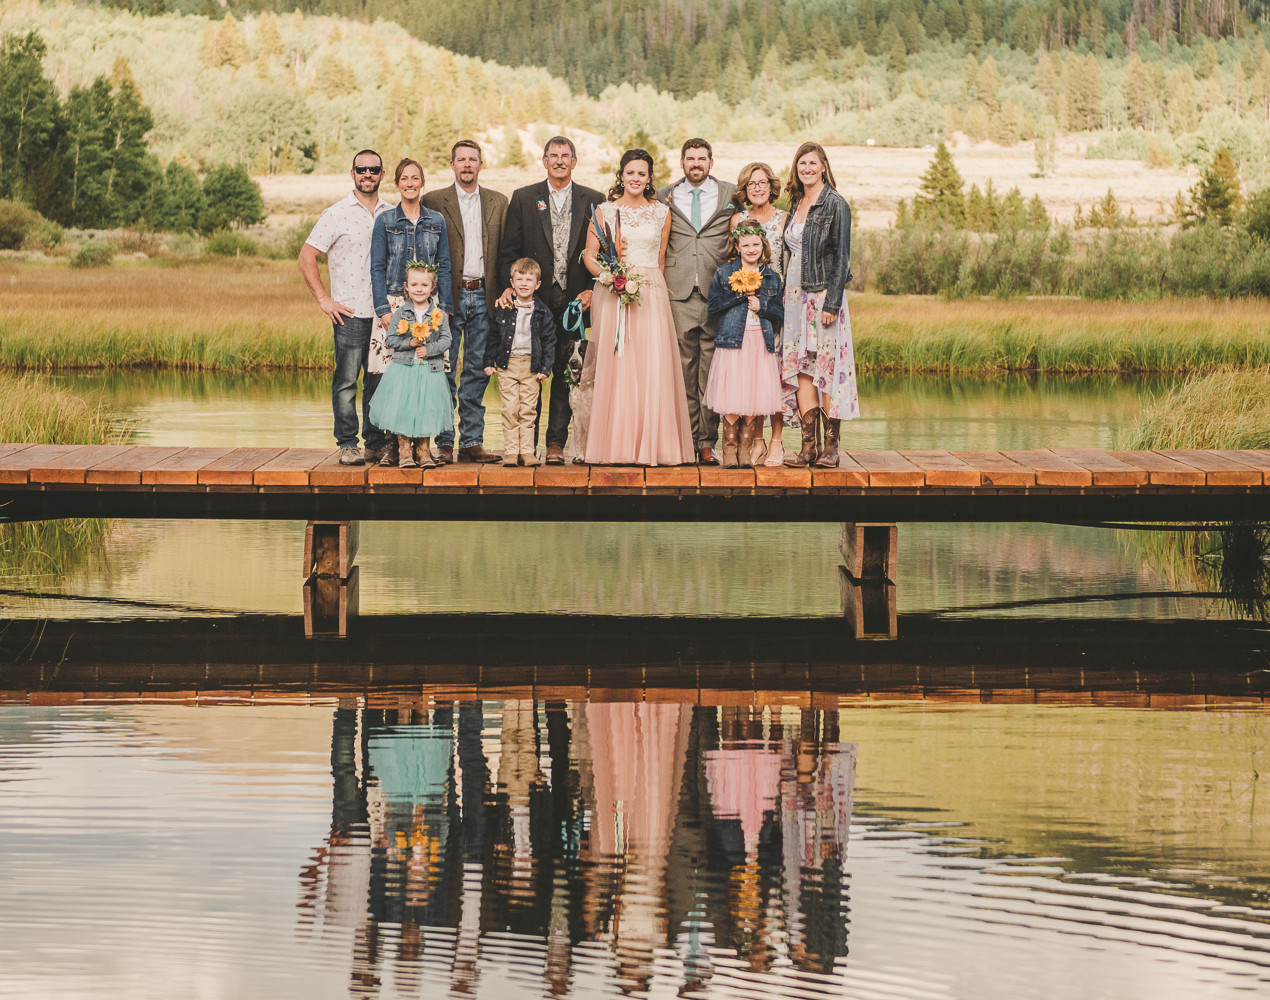 Camp Hale Fly Fishing Themed Wedding. Outdoor loving couples mountain wedding.